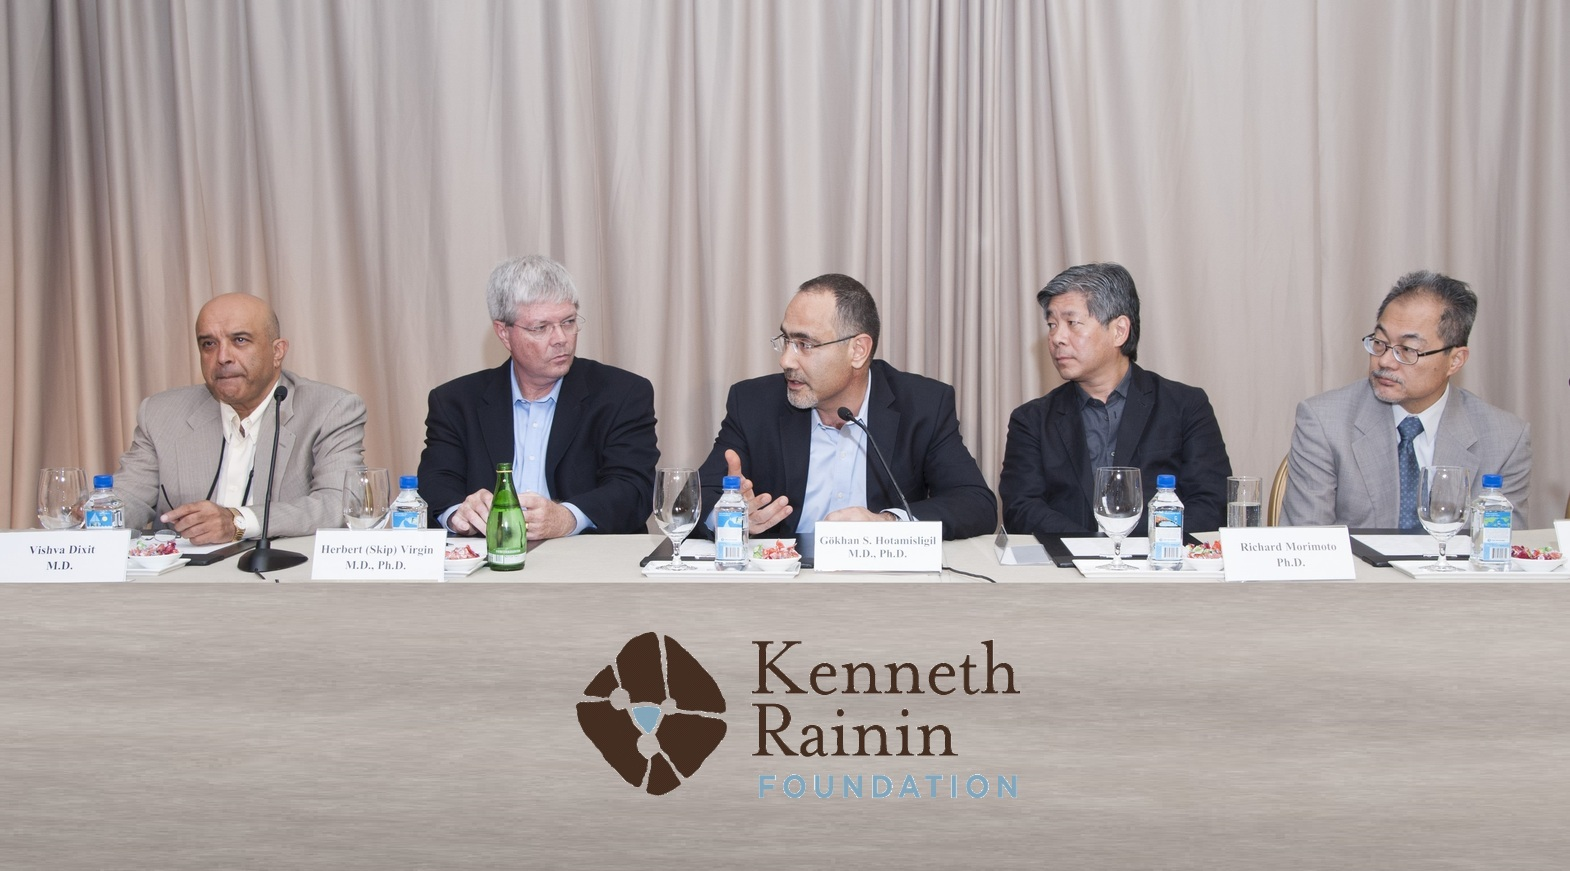 Kenneth Rainin Foundation Awards $1.5 Million in Health Research Grants